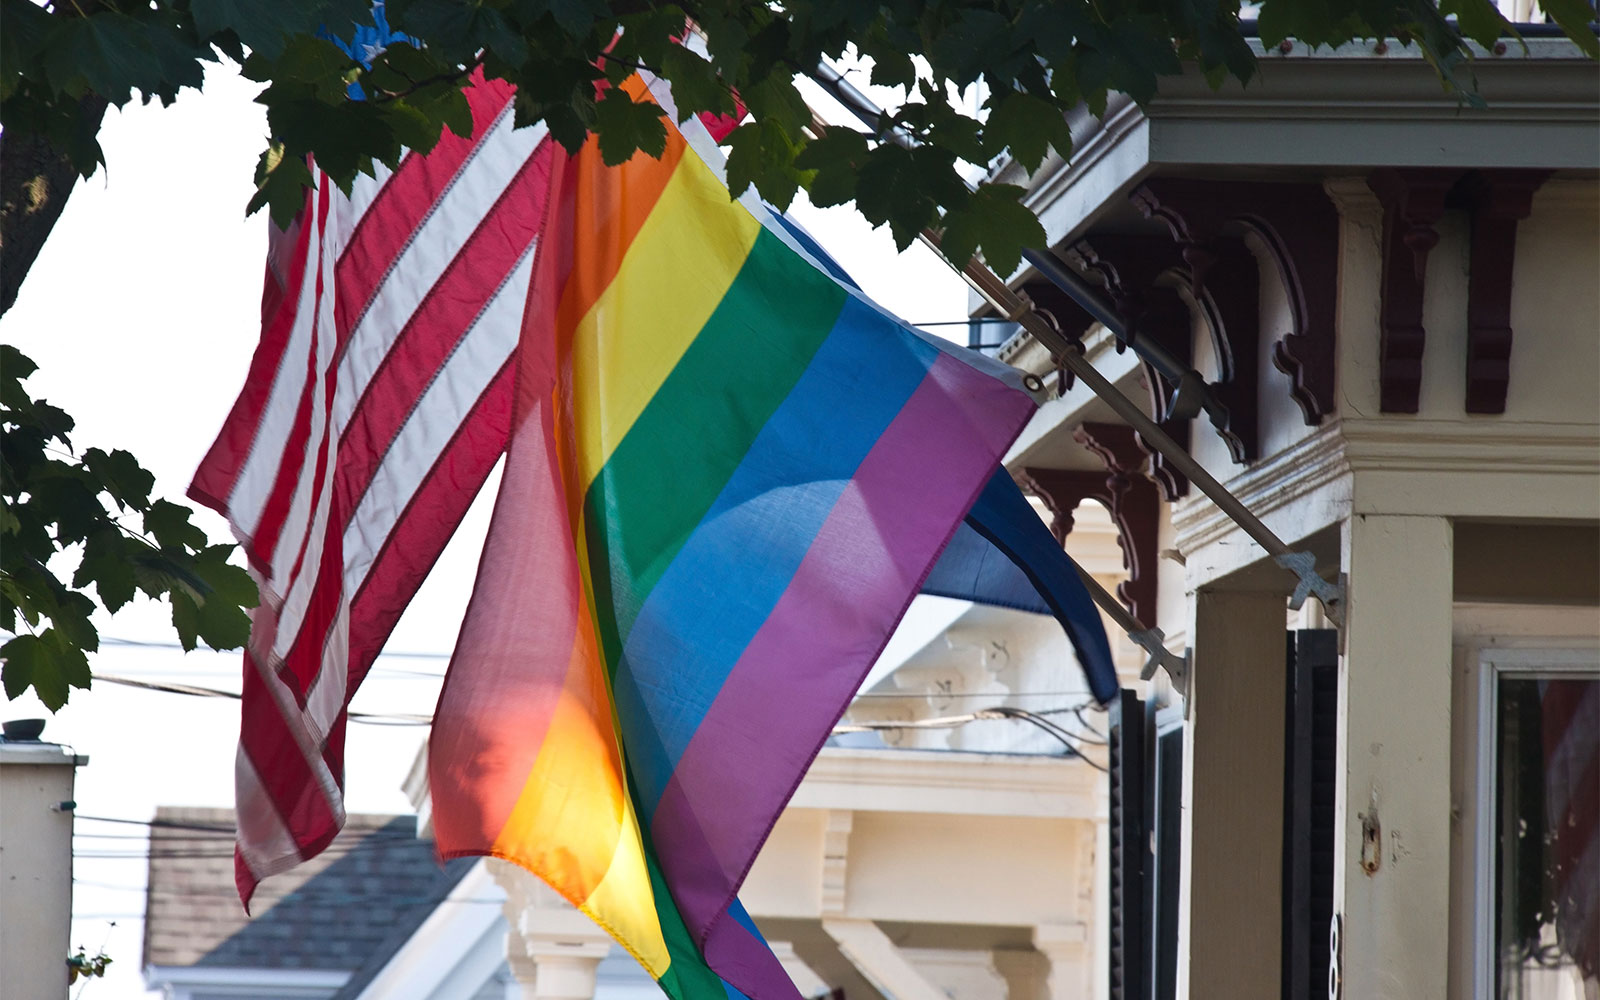 The Guide to Pride: Nine LGBT Destinations to Visit This Summer: Provincetown, Massachusetts